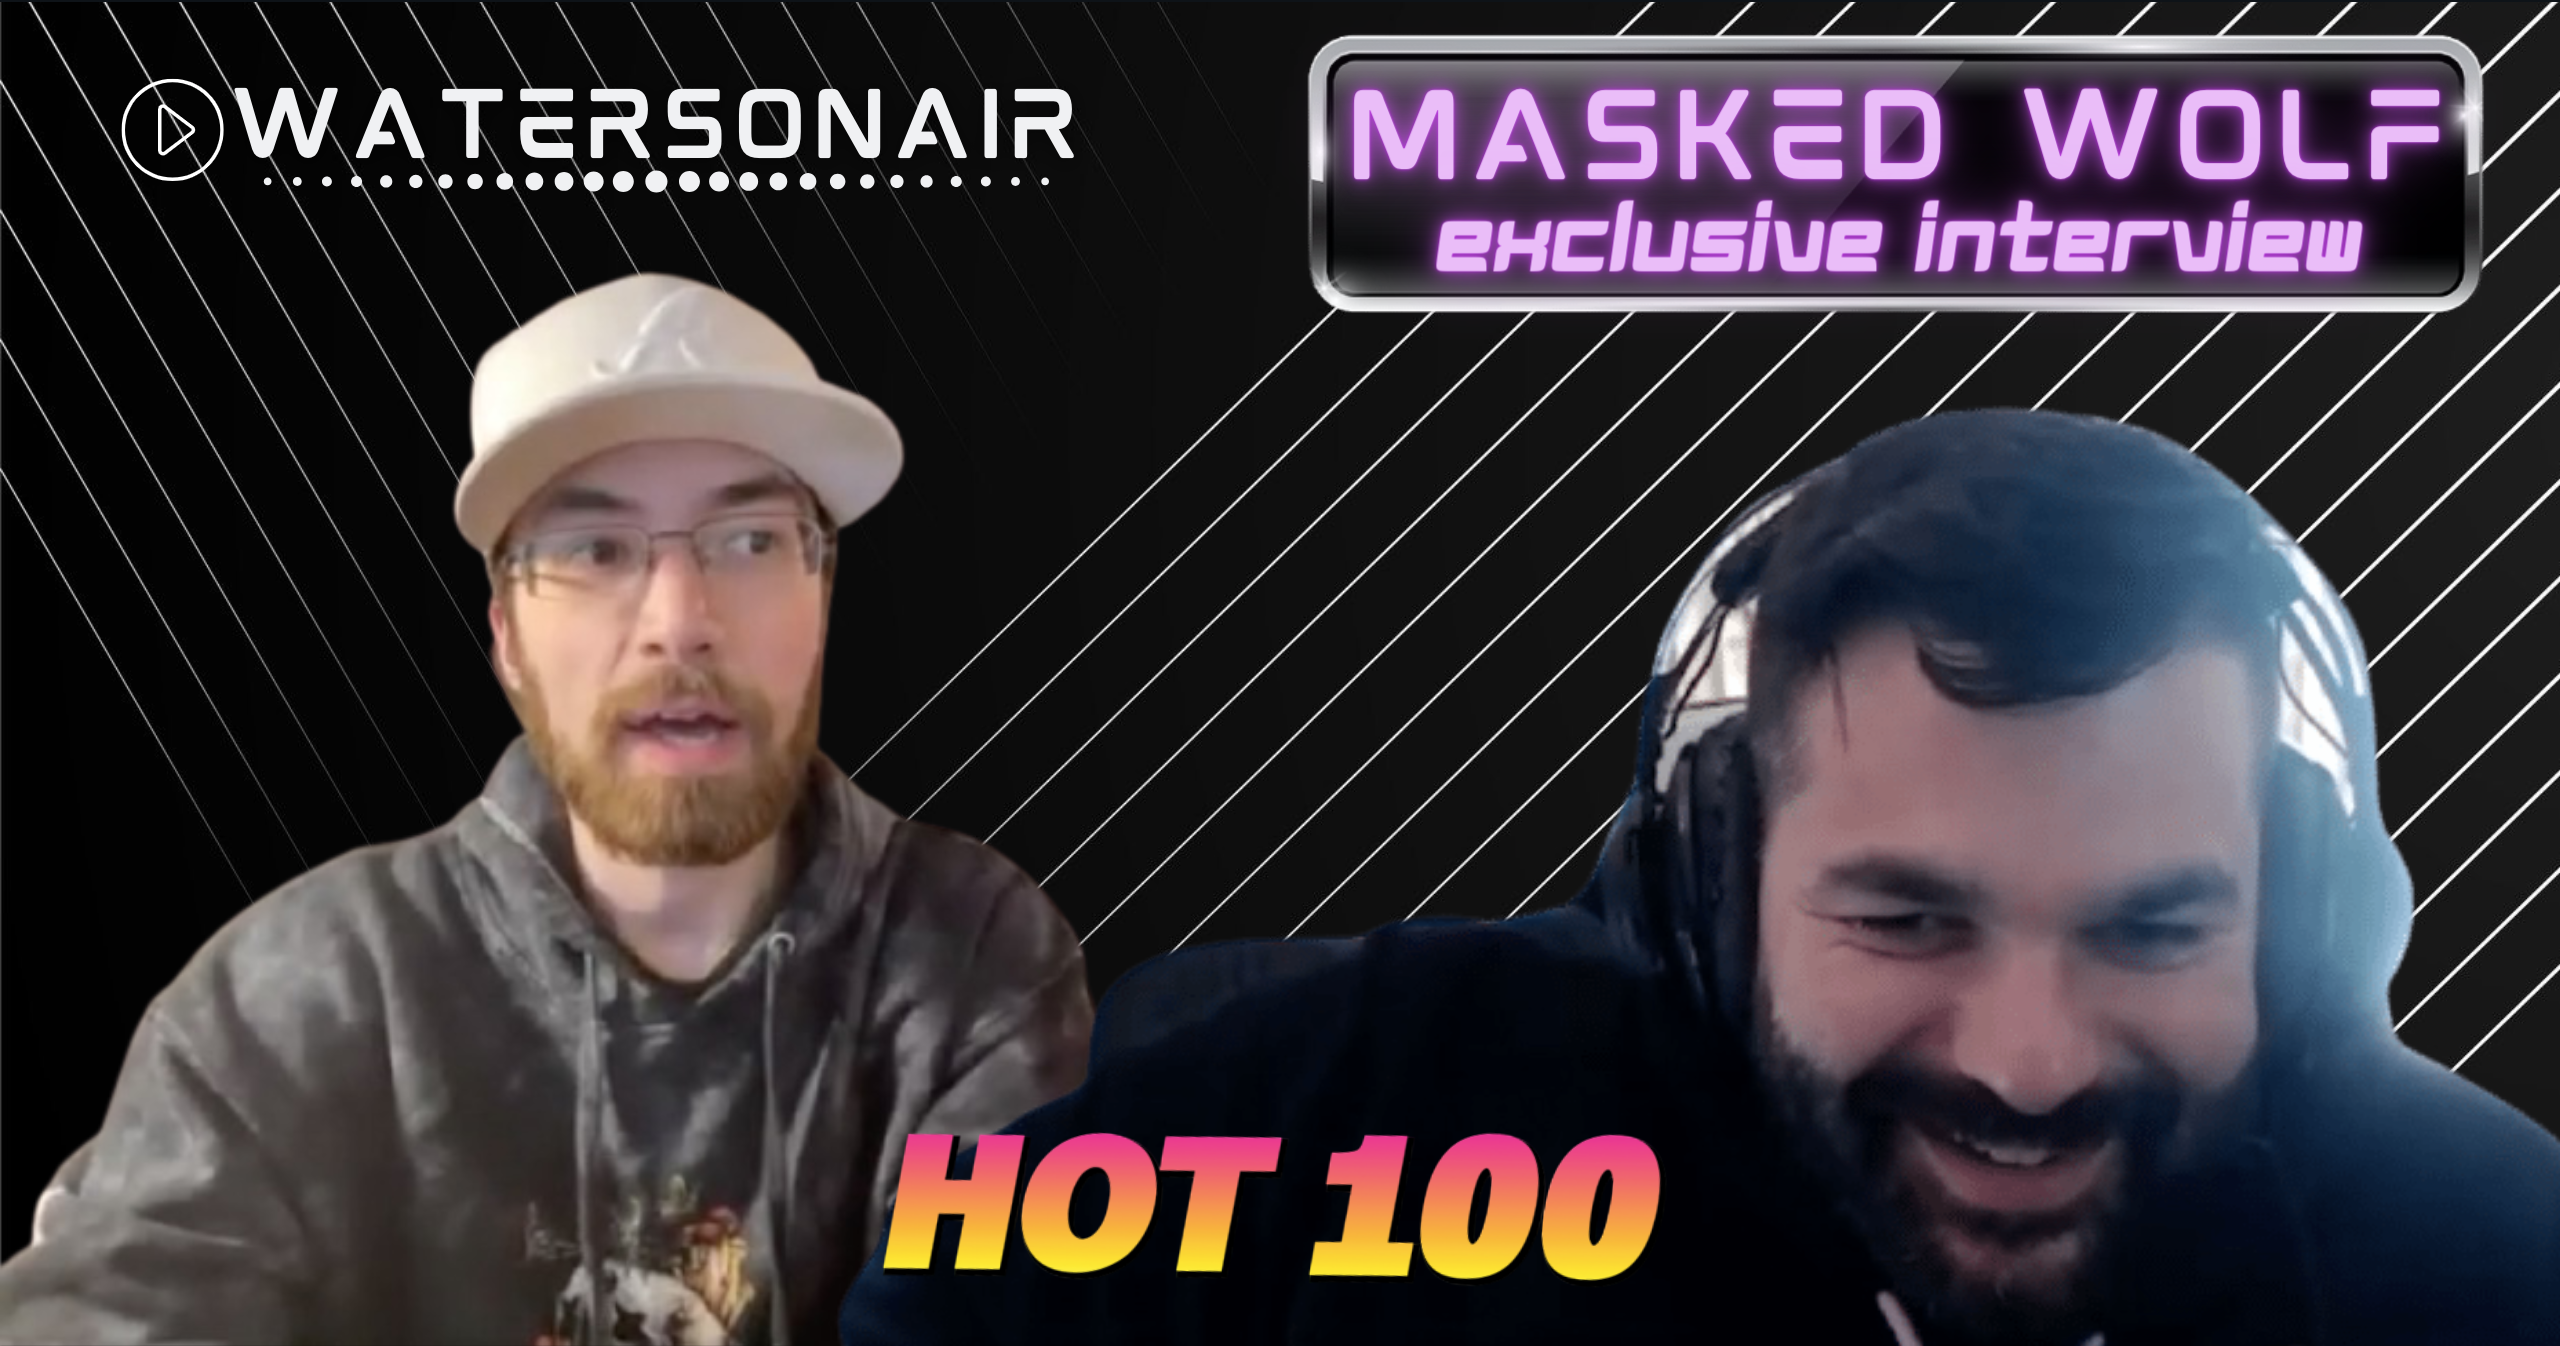 Hot 100 Exclusive: MASKED WOLF Talks Viral Hit 'Astronaut in the Ocean' and Mental Health